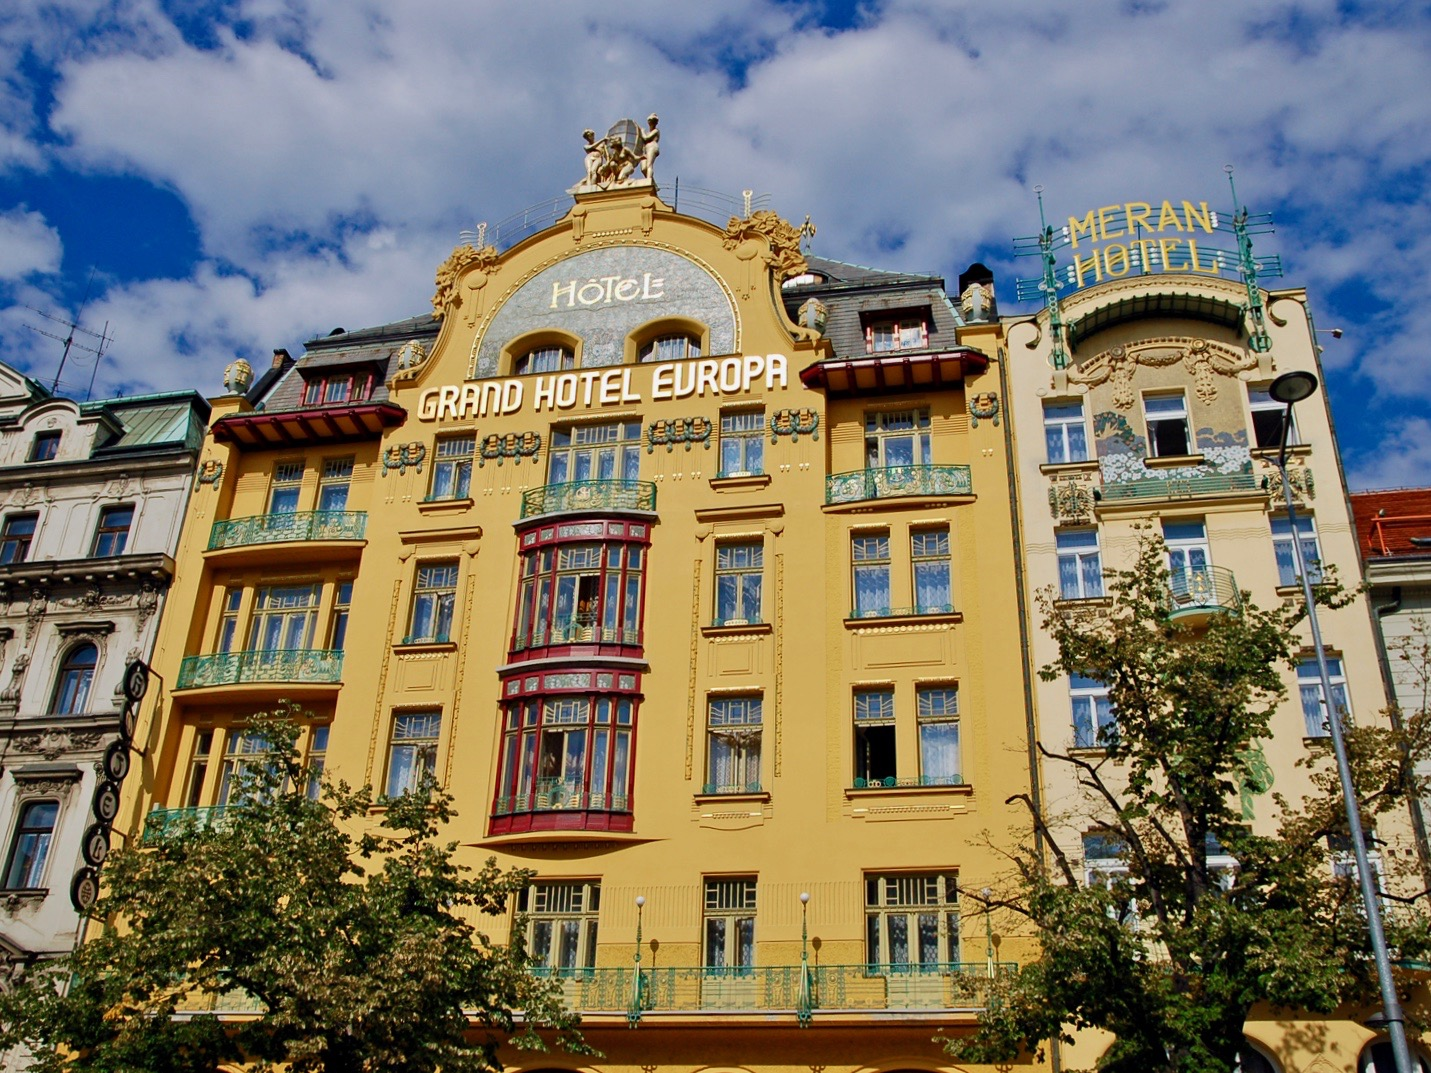 Hotel Evropa on Wenceslas Square, Prague. with an Art Nouveau facade from 1905.